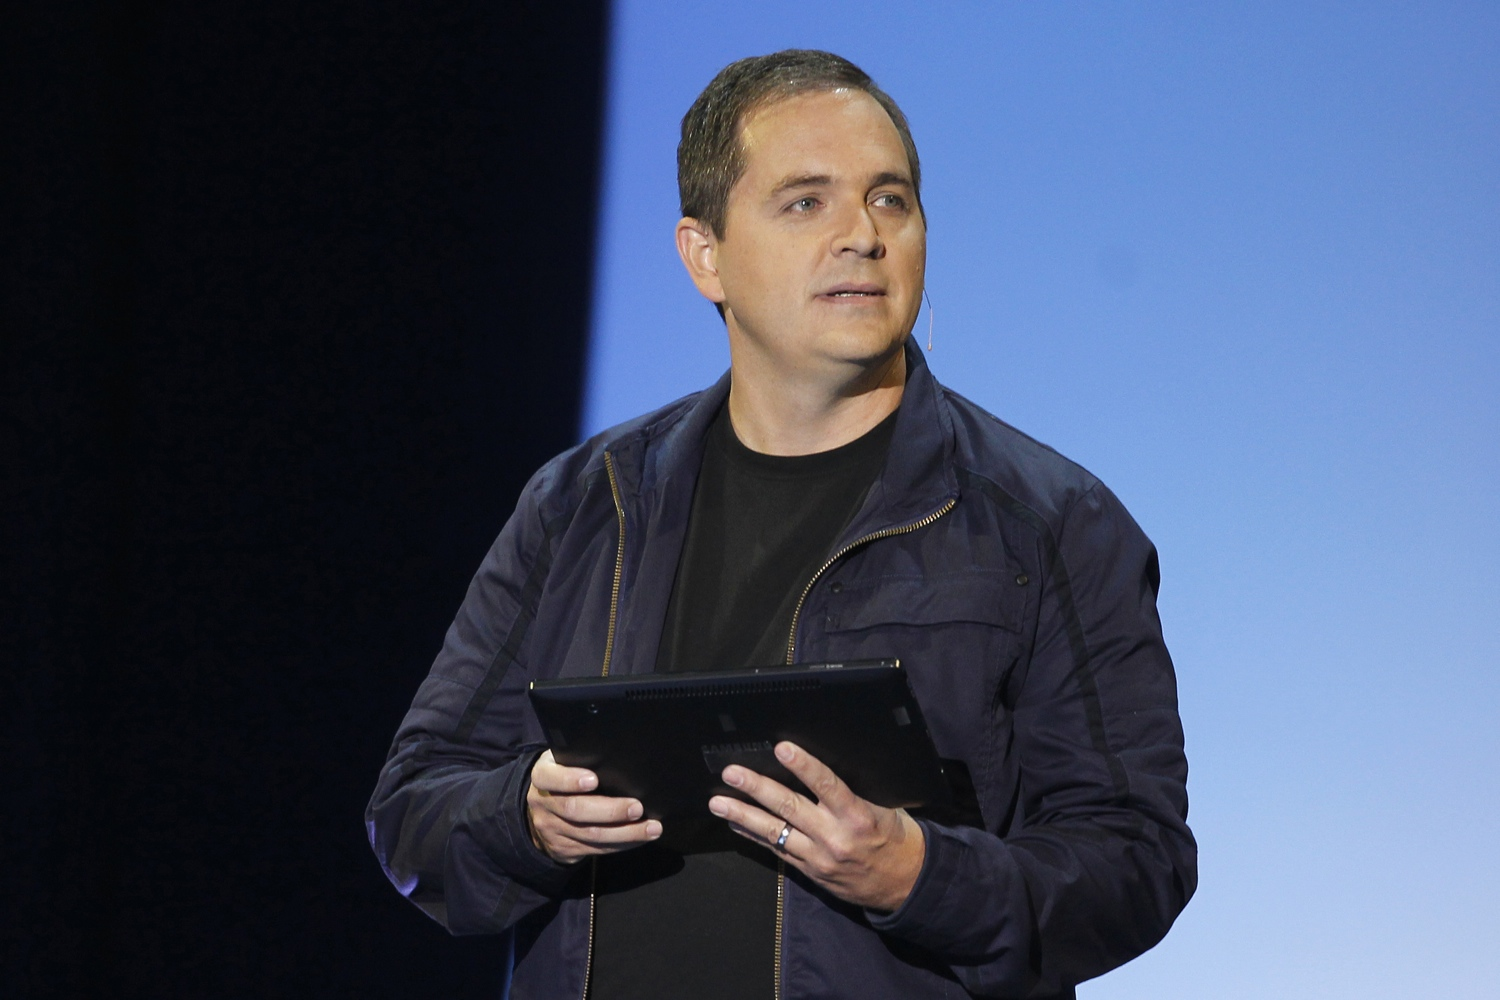 Marc Whitten, the head of Xbox Live, demonstrates the new Xbox feature, Xbox SmartGlass, a wireless tablet controller at the Microsoft Xbox news briefing during the E3 game expo in Los Angeles, California June 4, 2012.